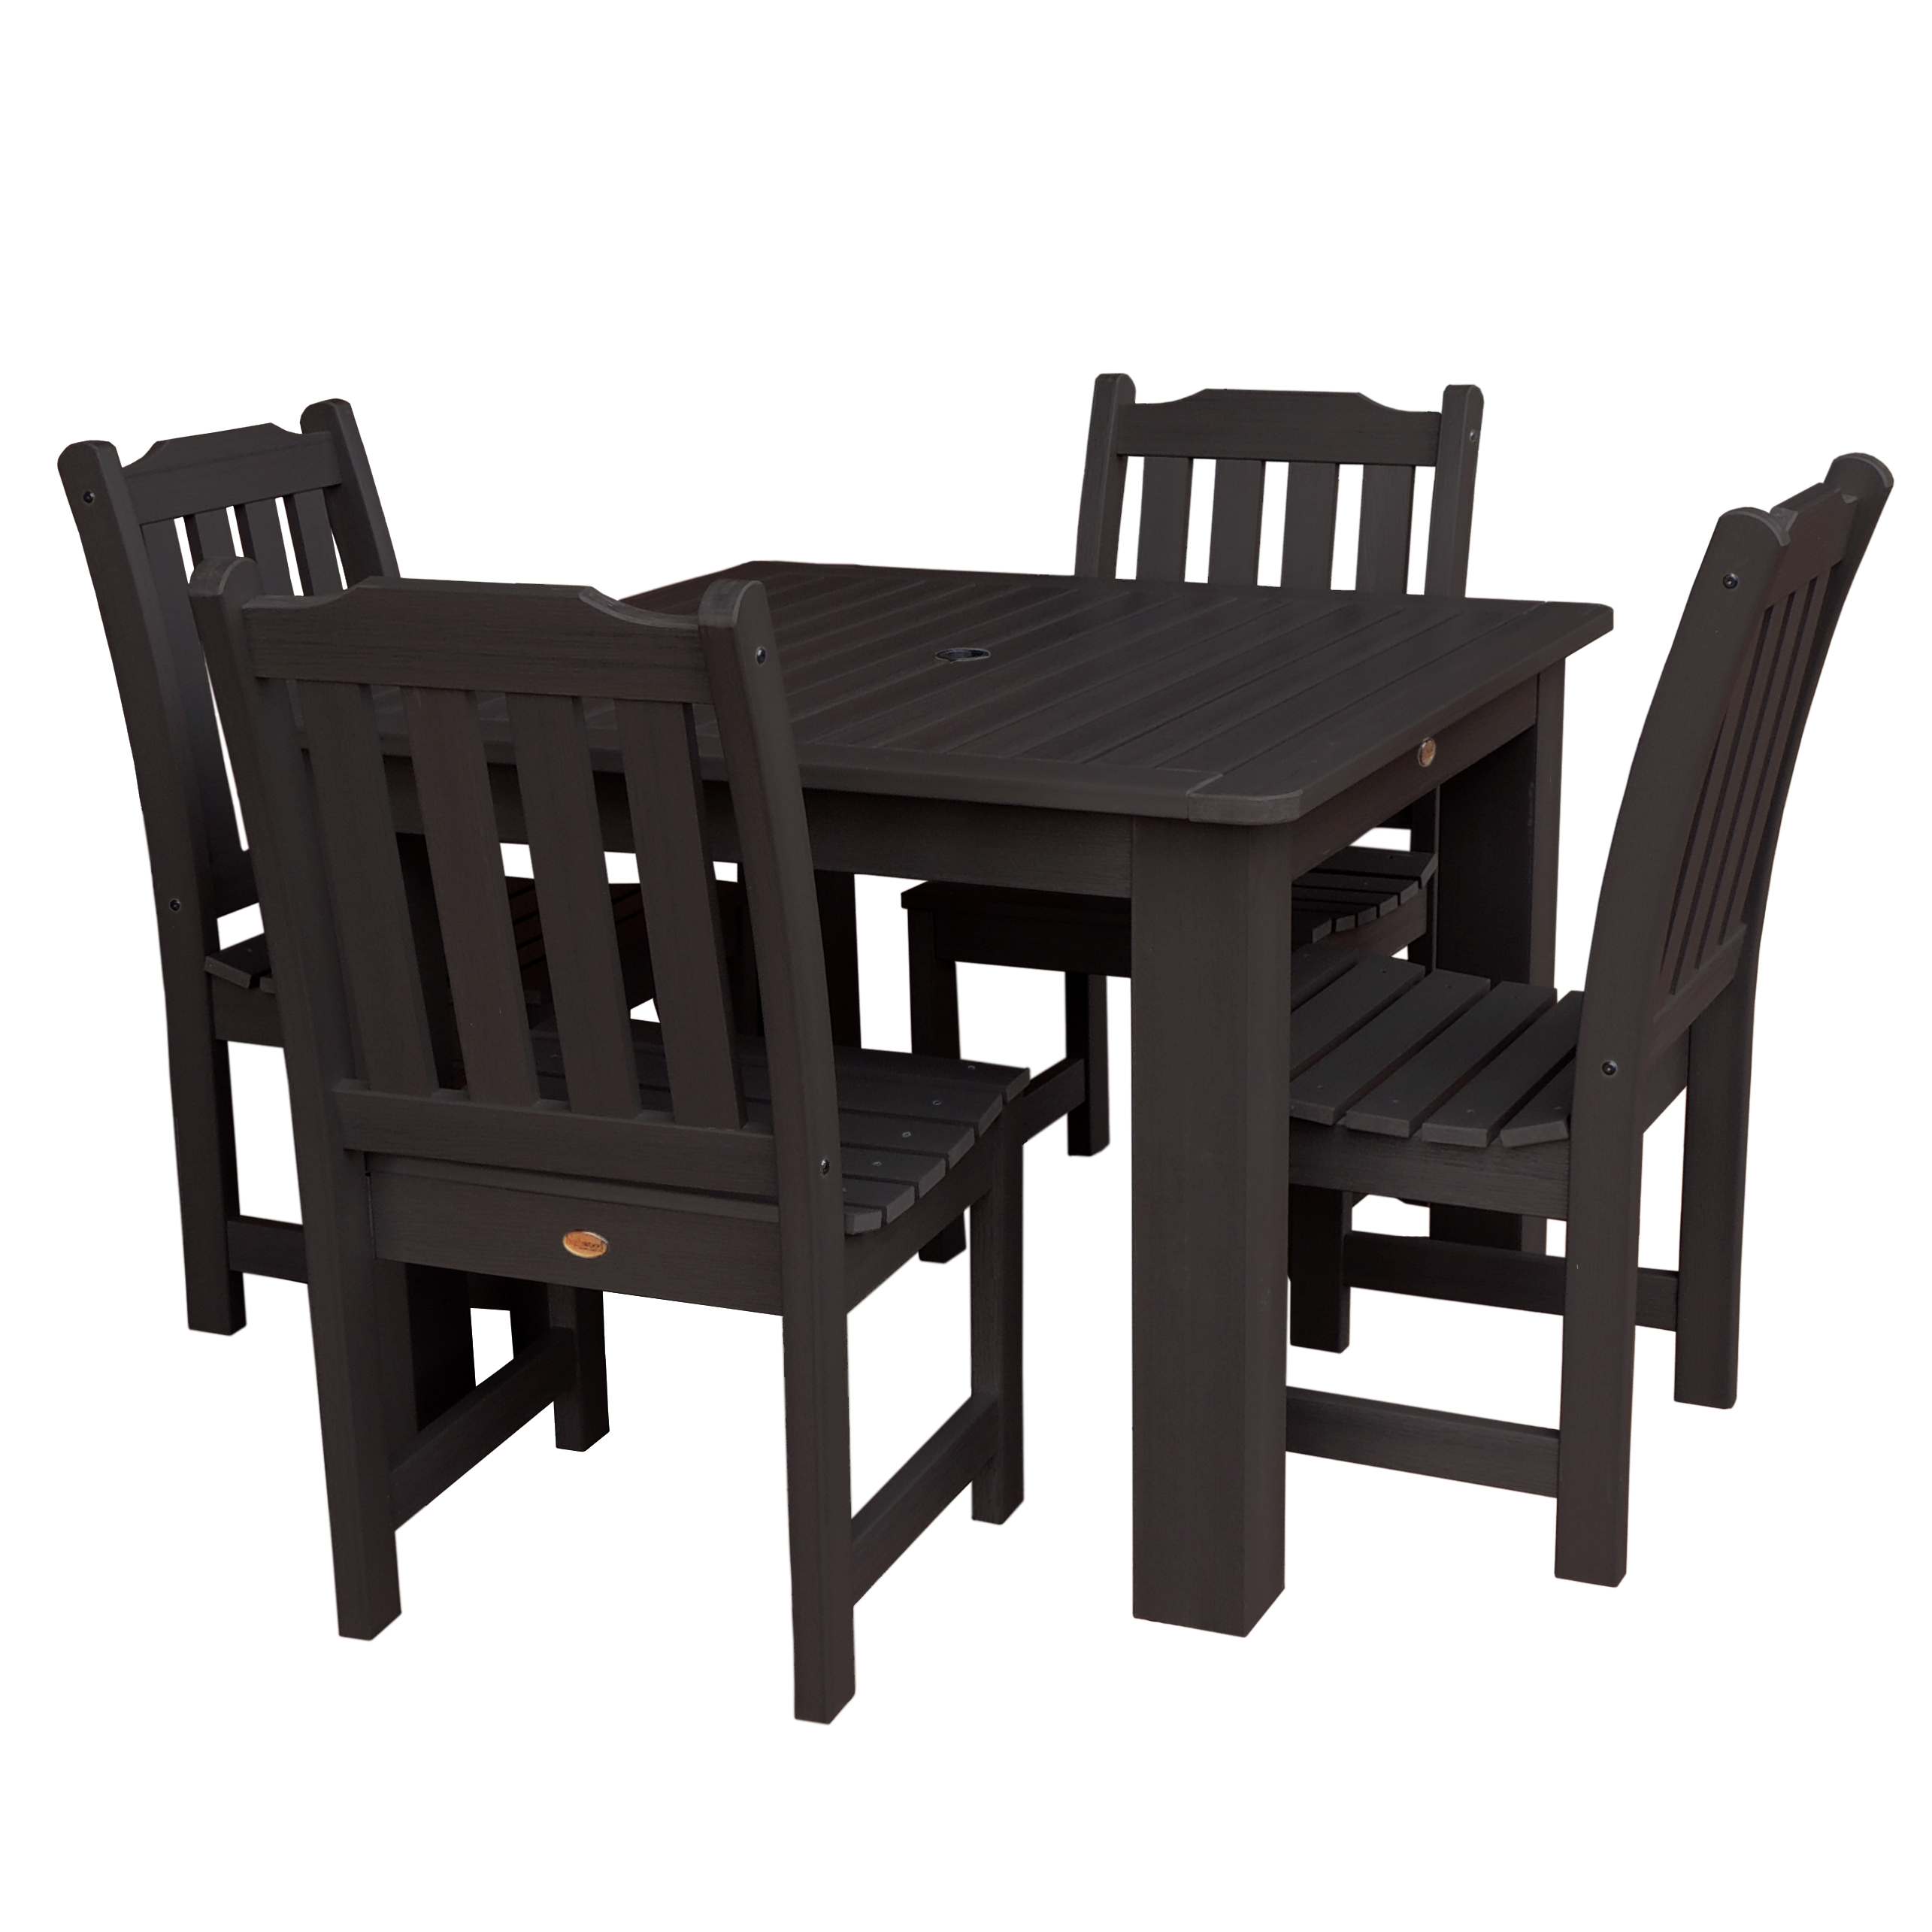 highwood® Eco-Friendly Recycled Plastic Lehigh 5pc Square Dining Set